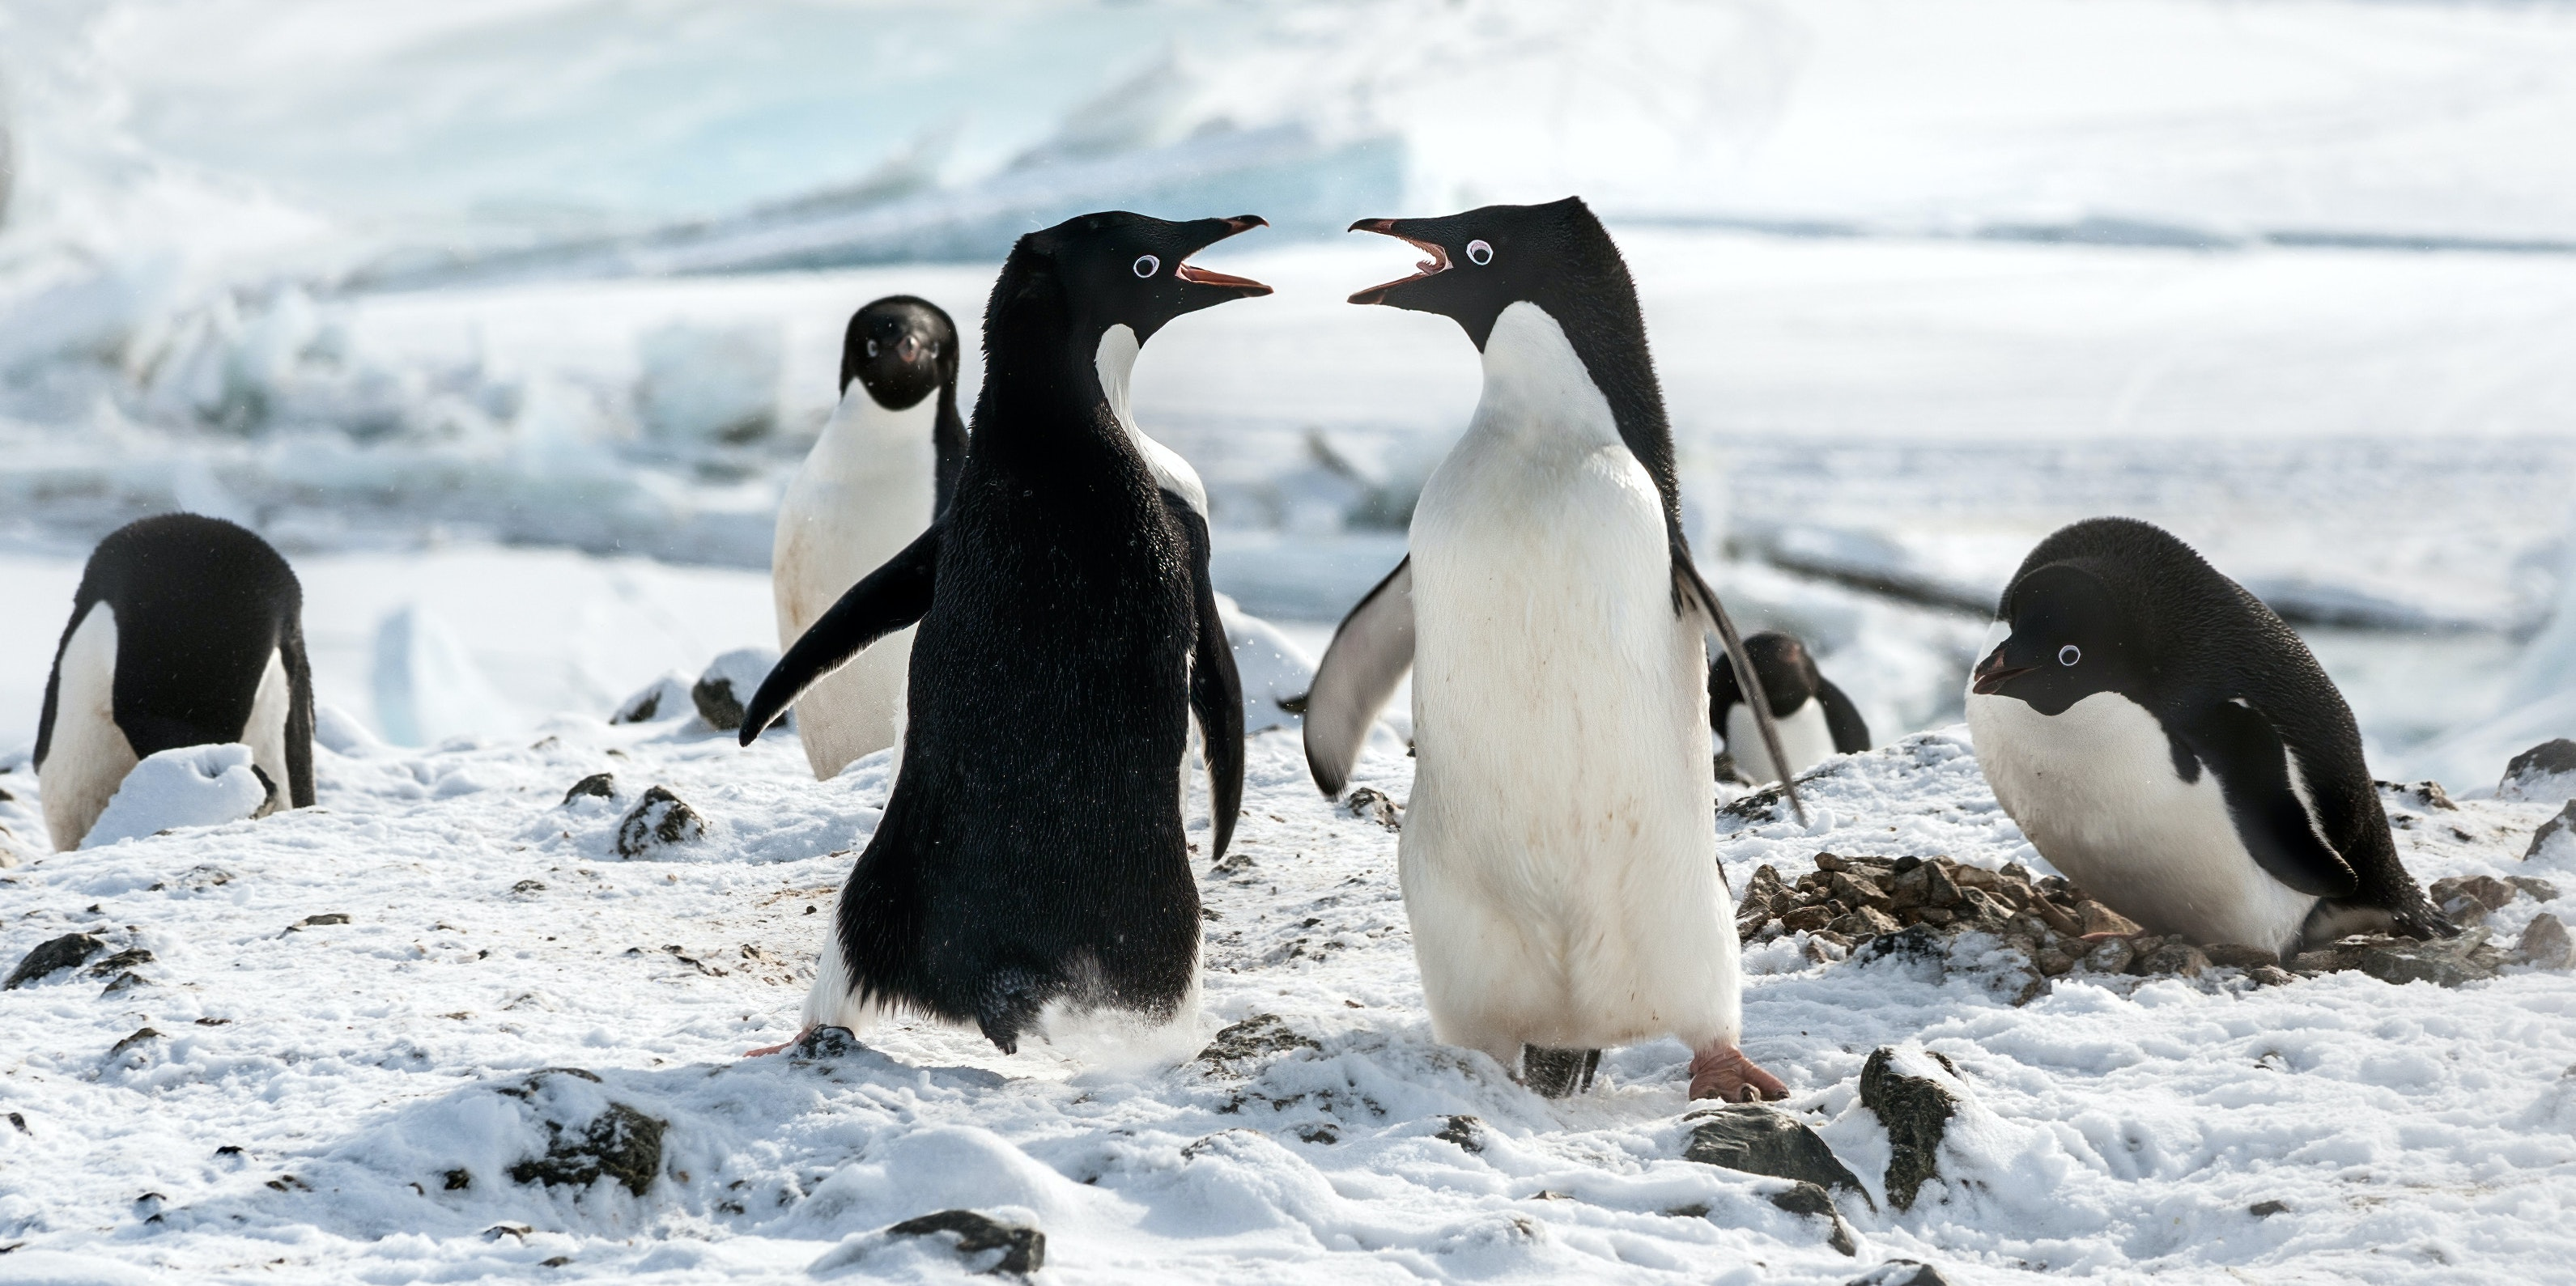 'DisneyNature Penguins' Review: A Live-Action Disney Movie We Actually Want